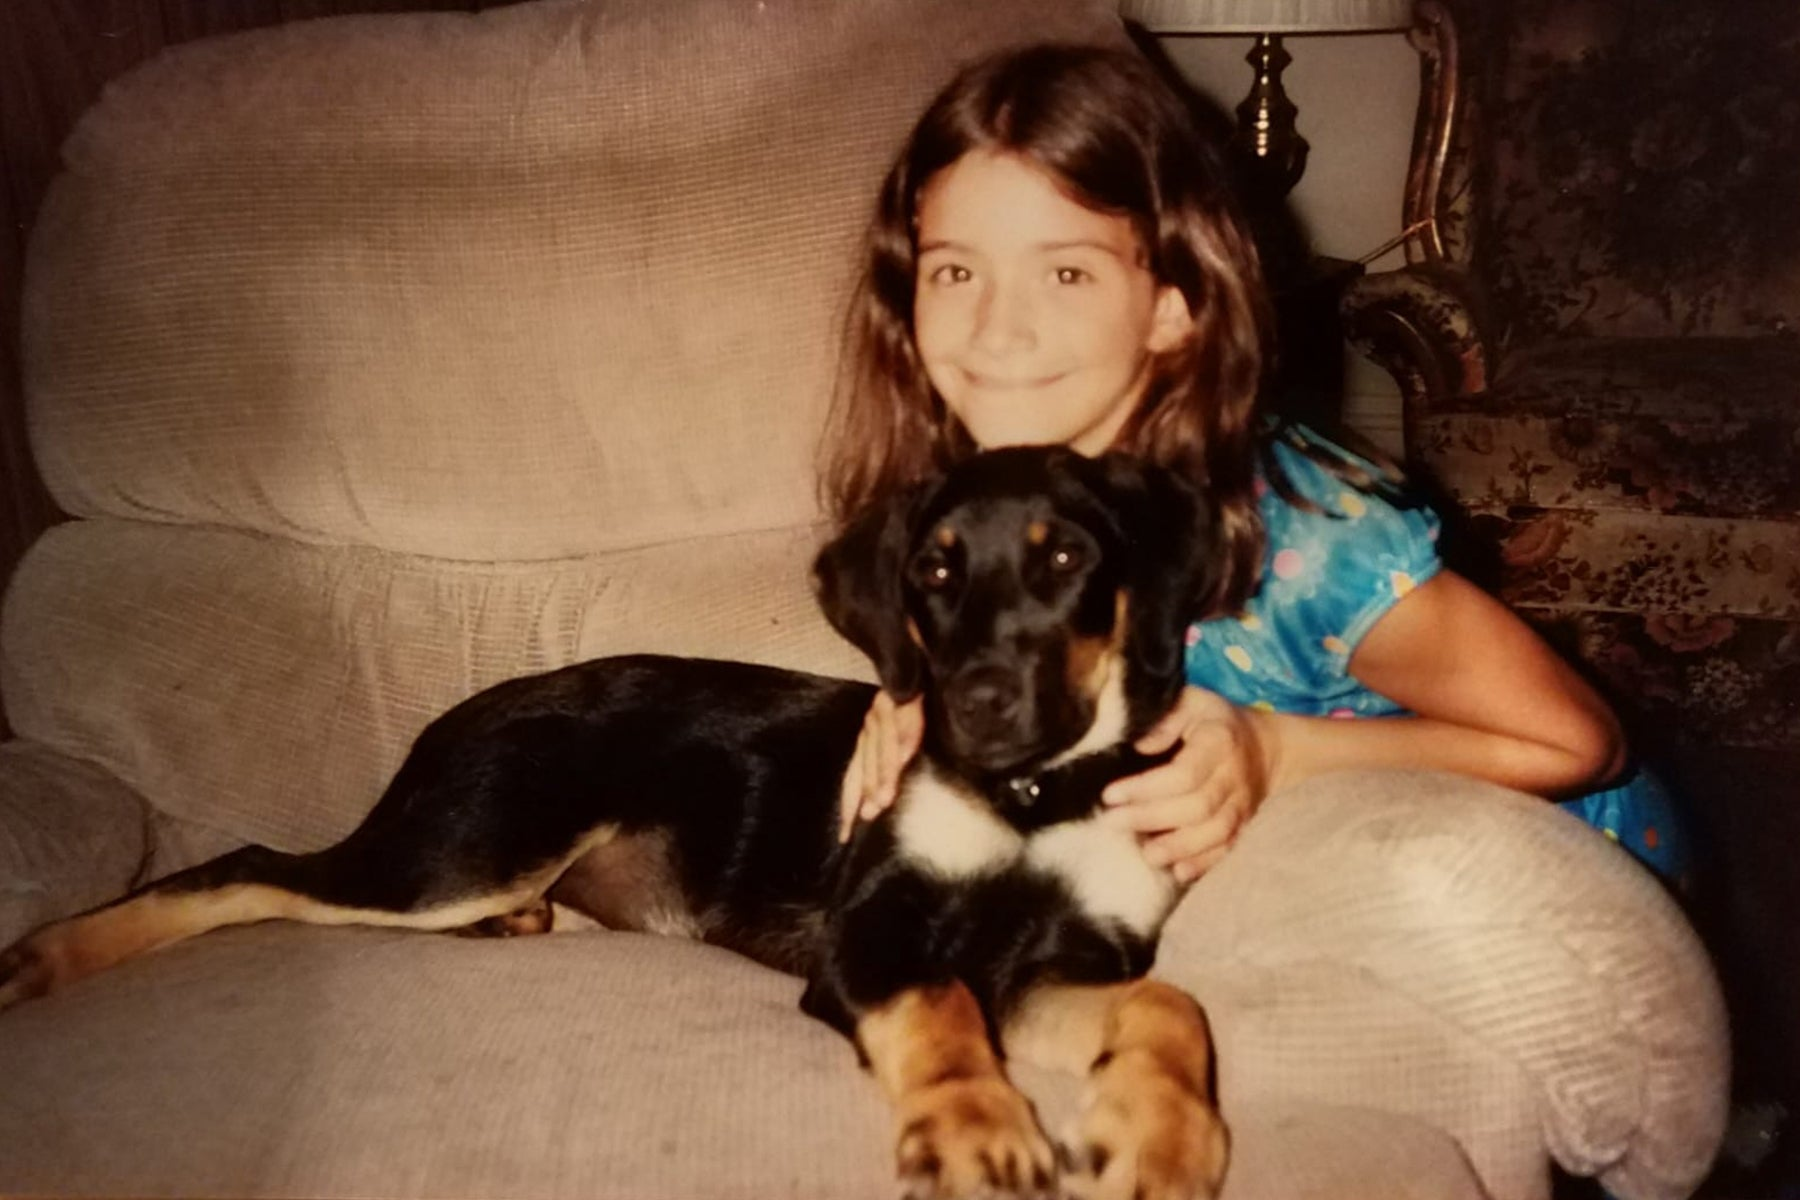 Young Kristen with her family dog.